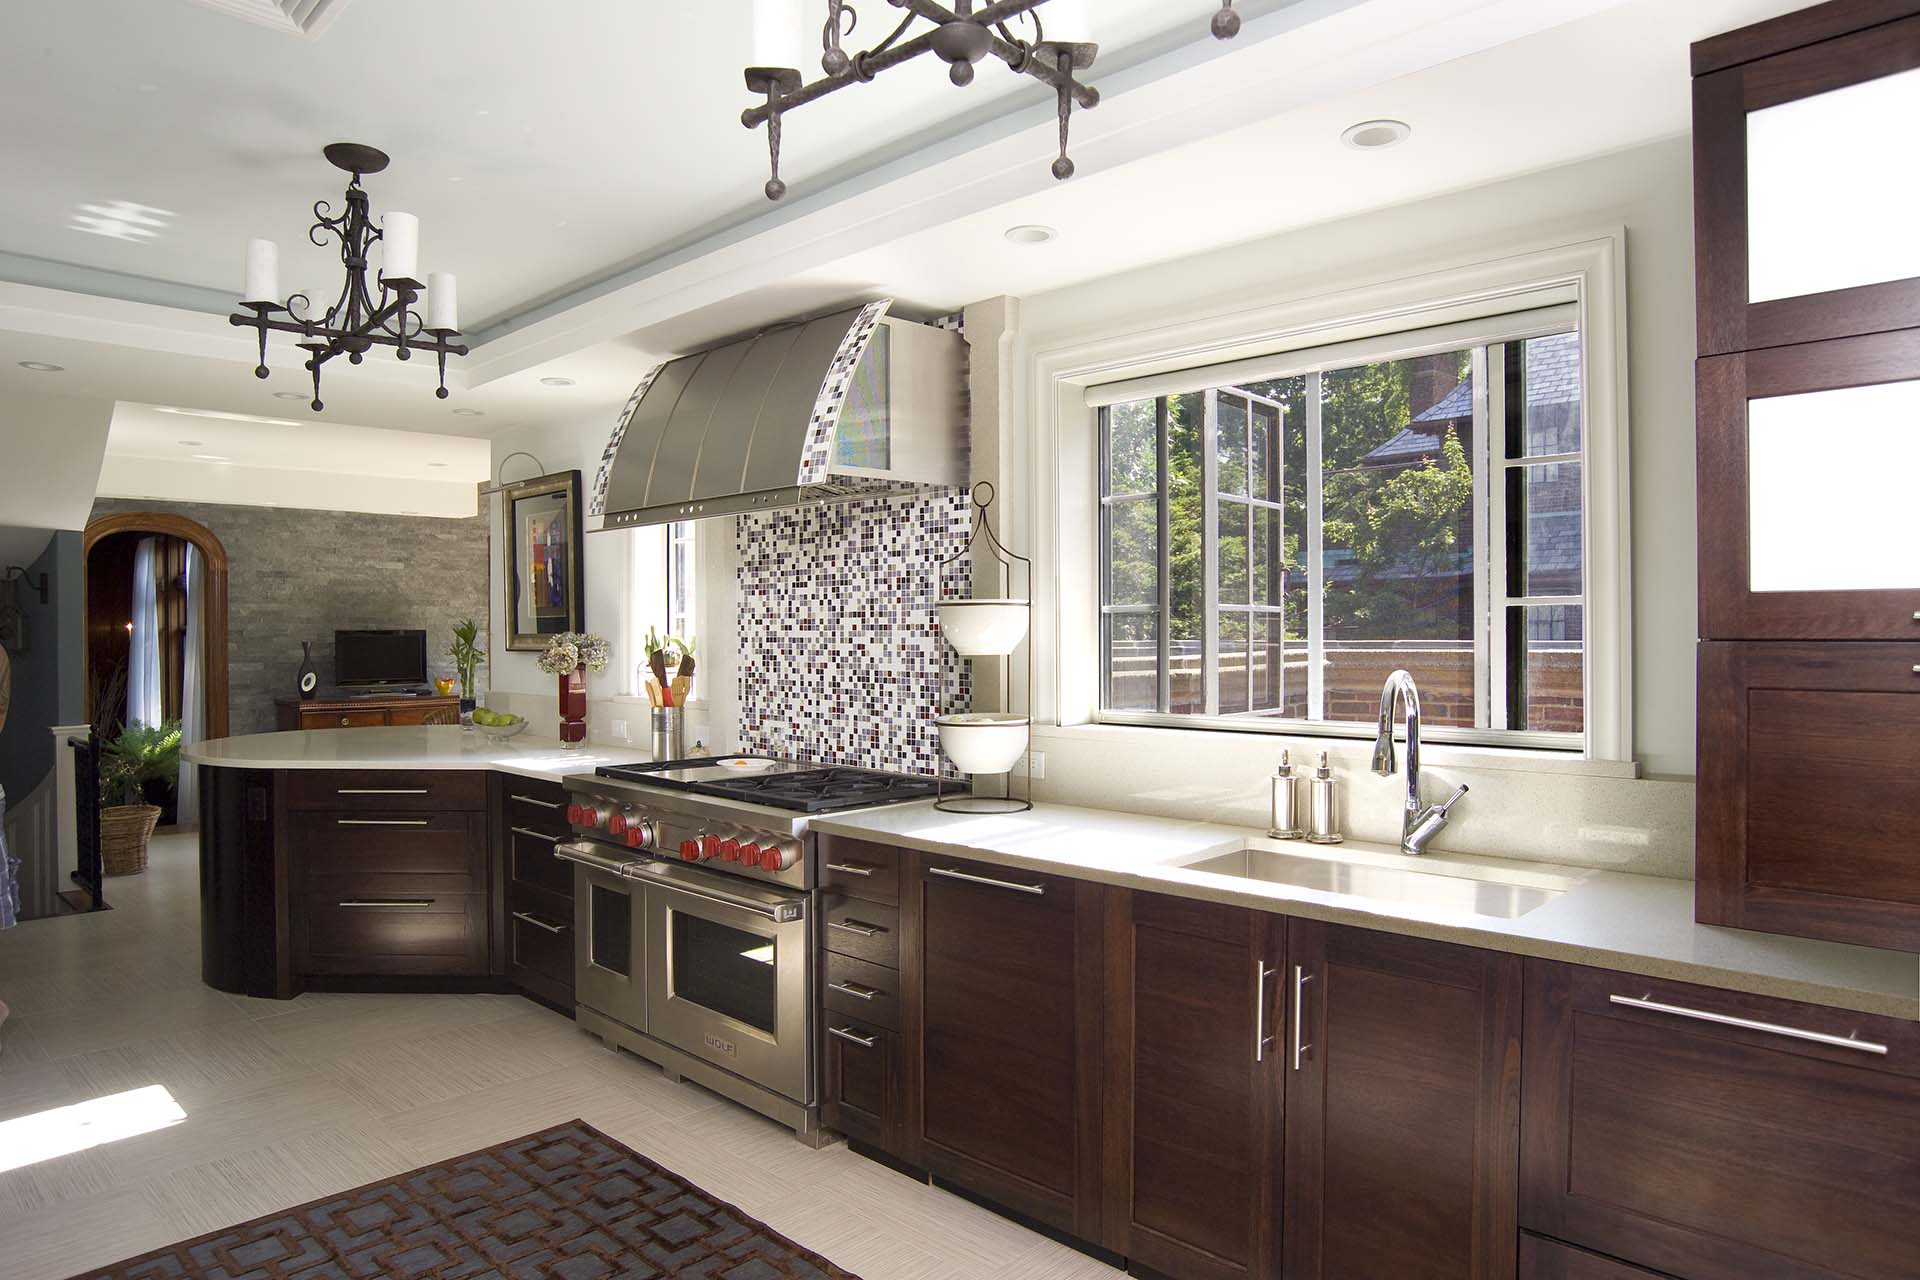 Open up your Boston kitchen windows and let in fresh air with Phantom window screens